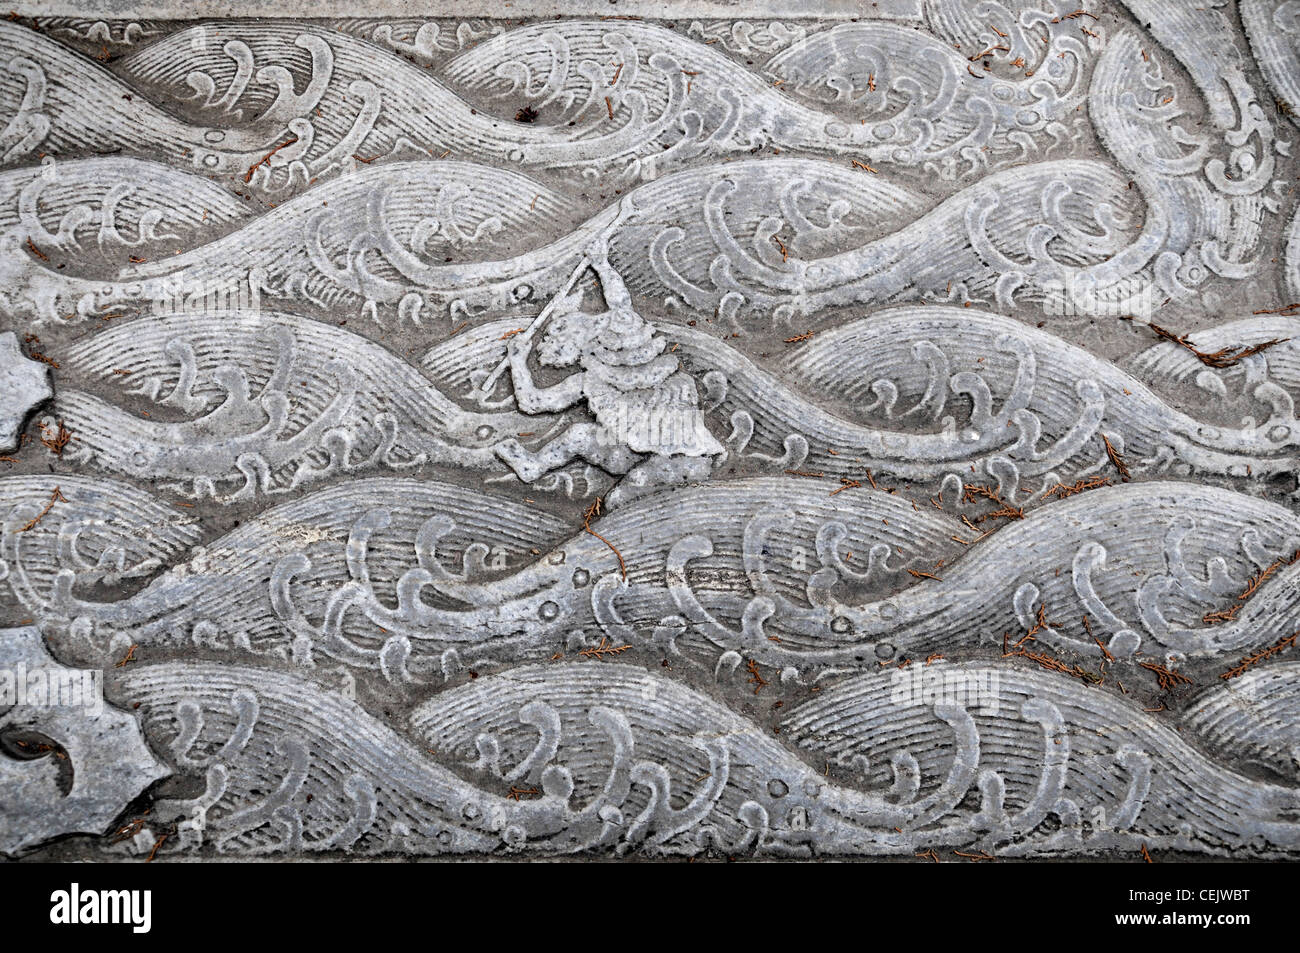 Intricate intricately carved carving stone slab bas relief